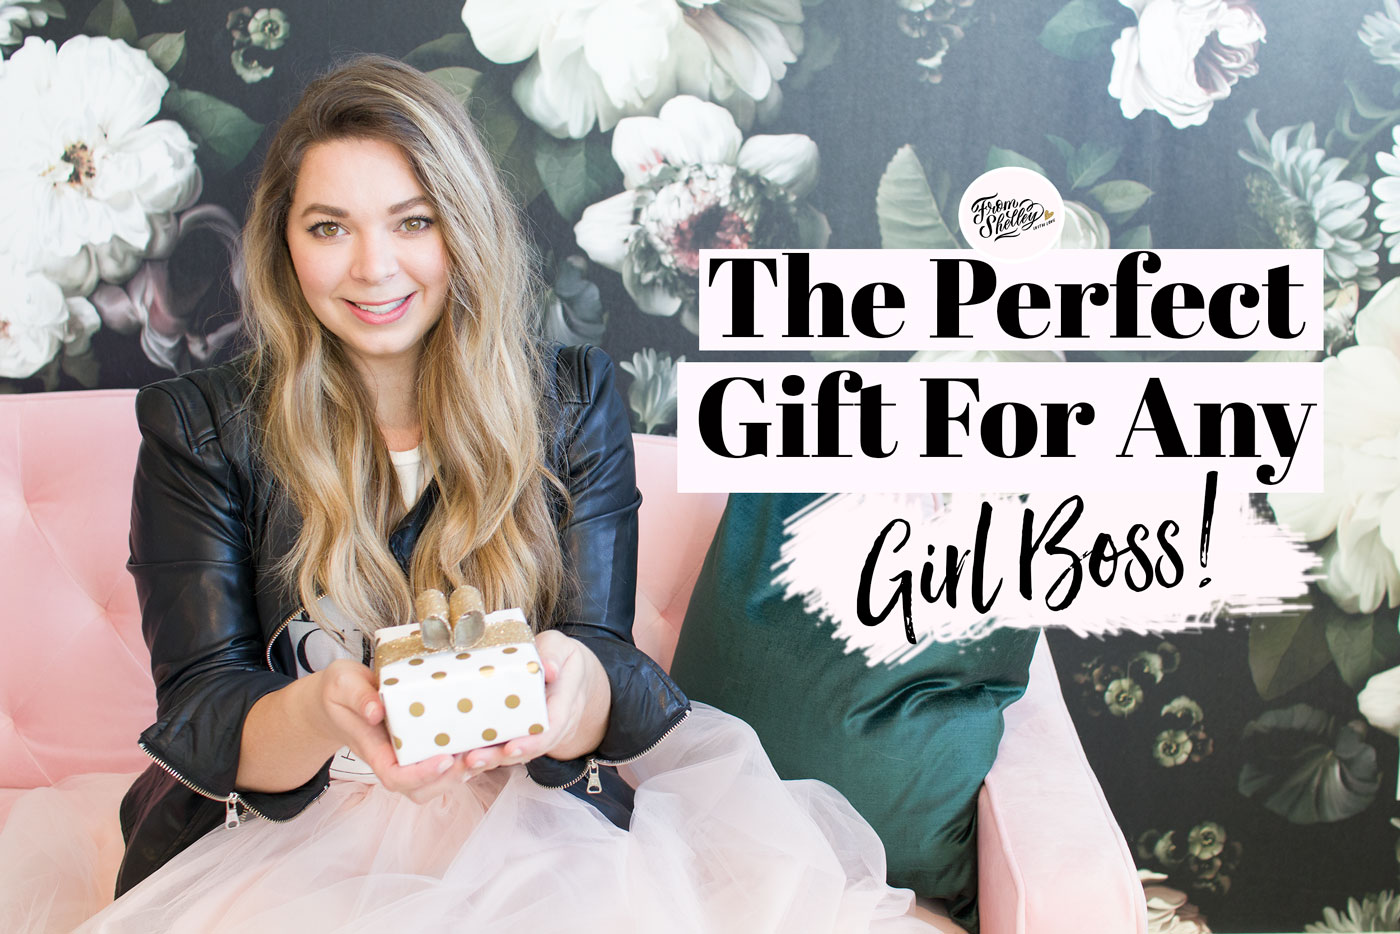 The Perfect Gift For Any Girl Boss From Shelley With Love